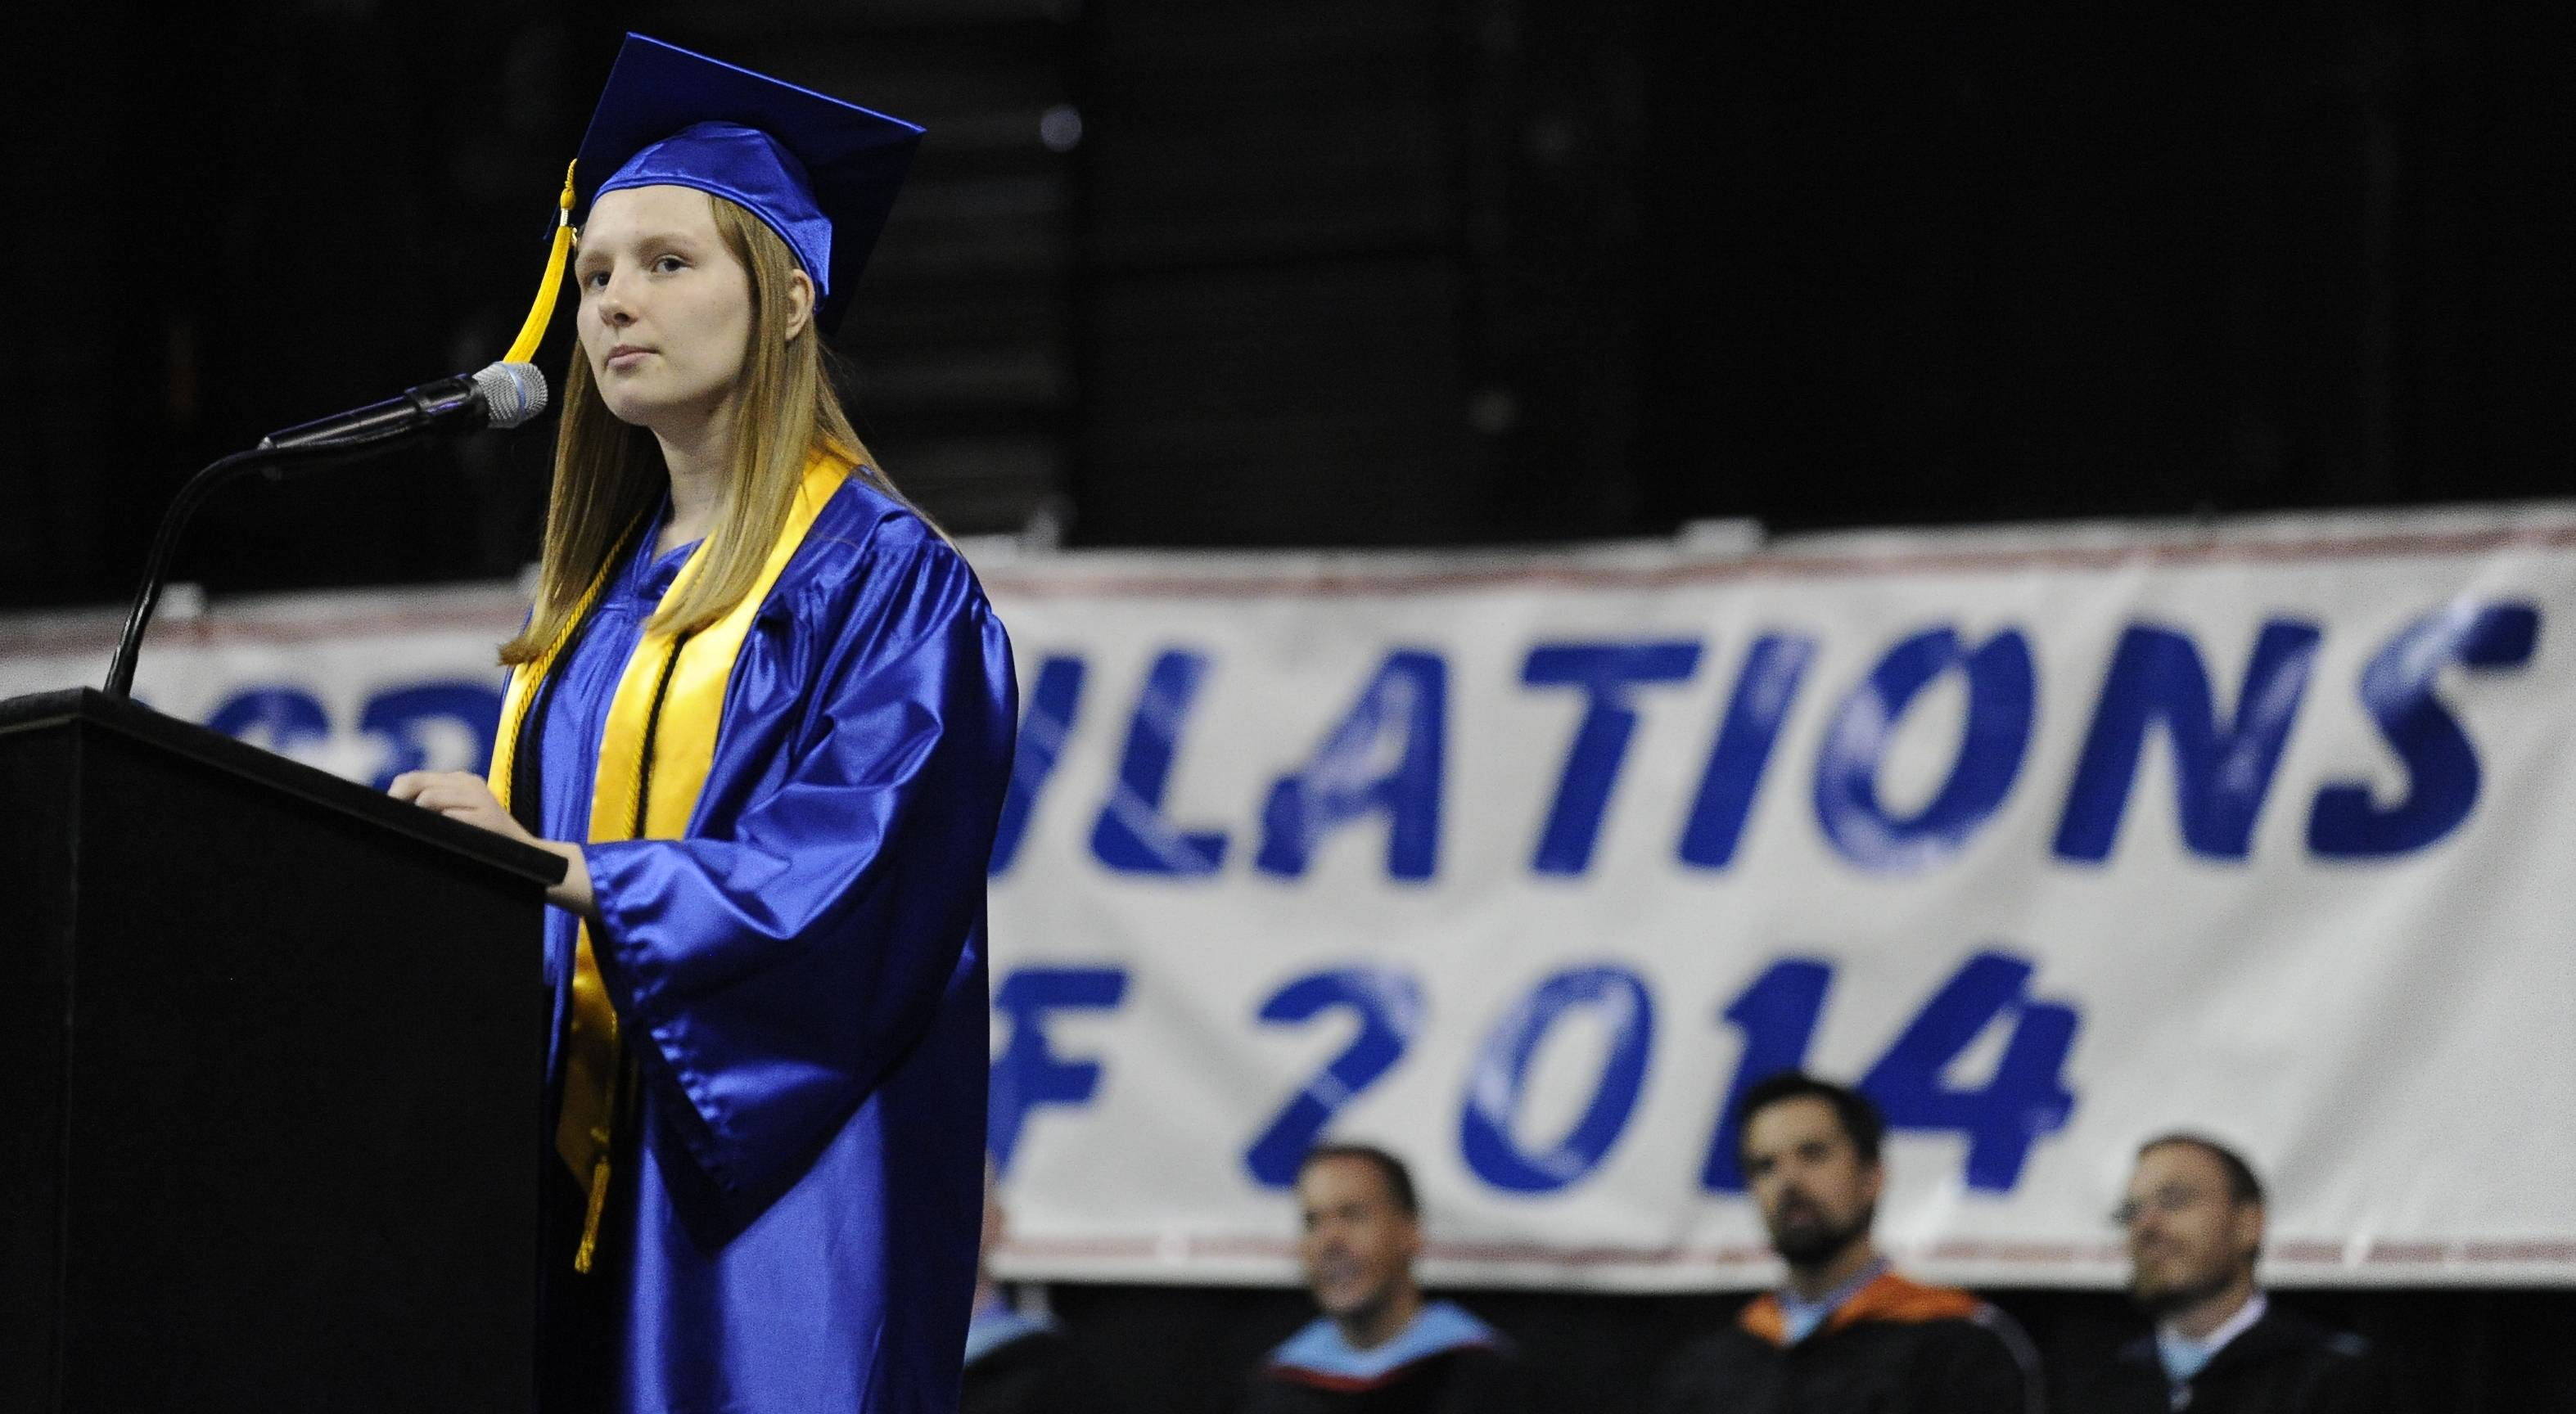 Images from the Dundee-Crown High School graduation Saturday, May 17th.